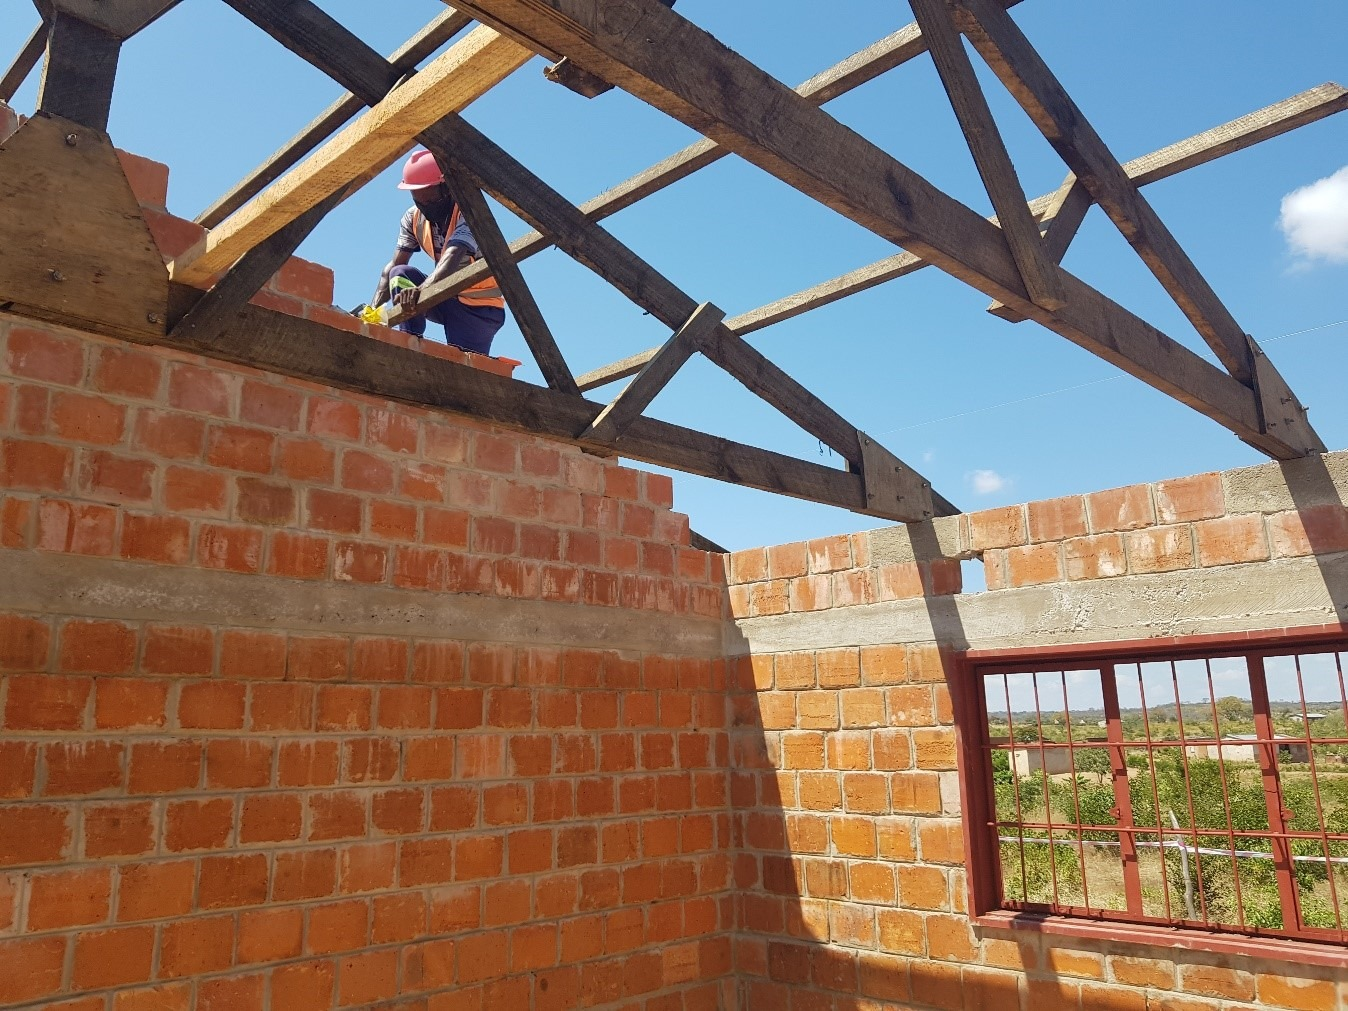 Fixing the purlins on the new classrooms at Light of Hope Community School